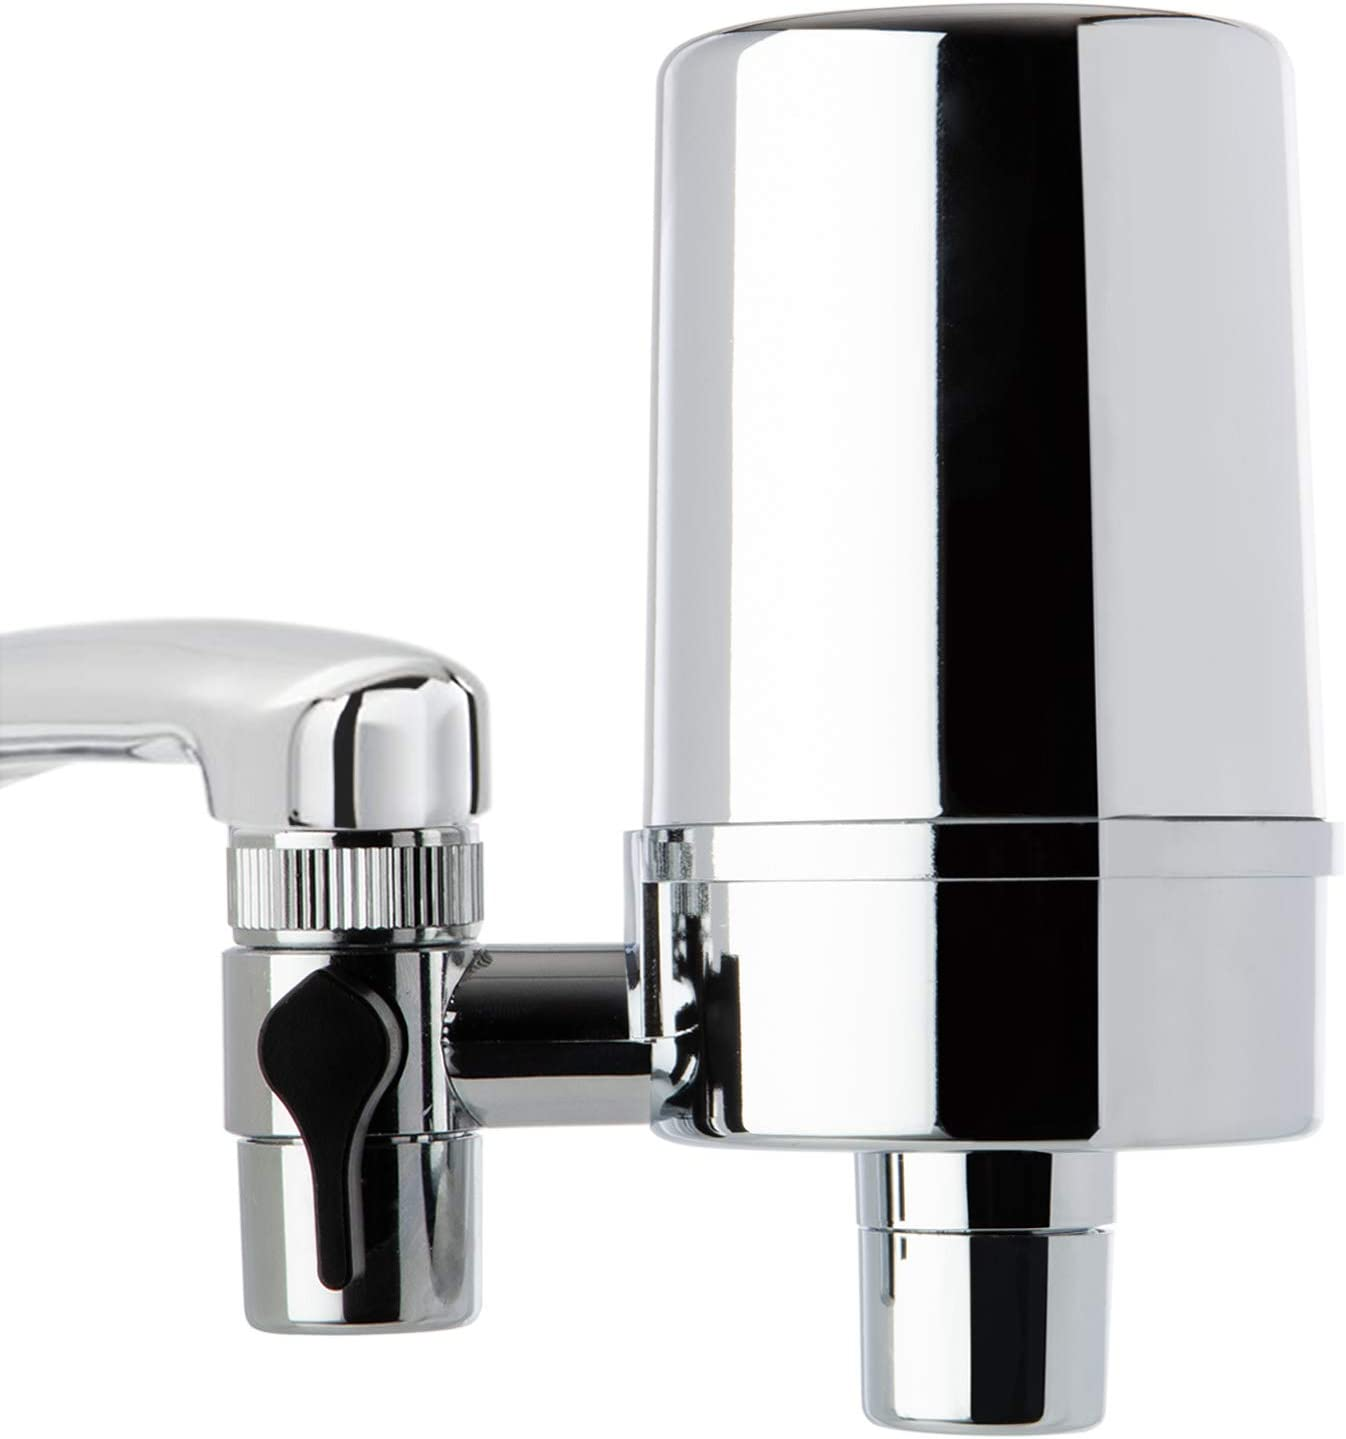 iSpring DF2-CHR Faucet Mount Water Unparalleled Contaminants Removal, 500GAL Filter Life, 1.5GPM Filtration Rate, Chrome W/Aerator